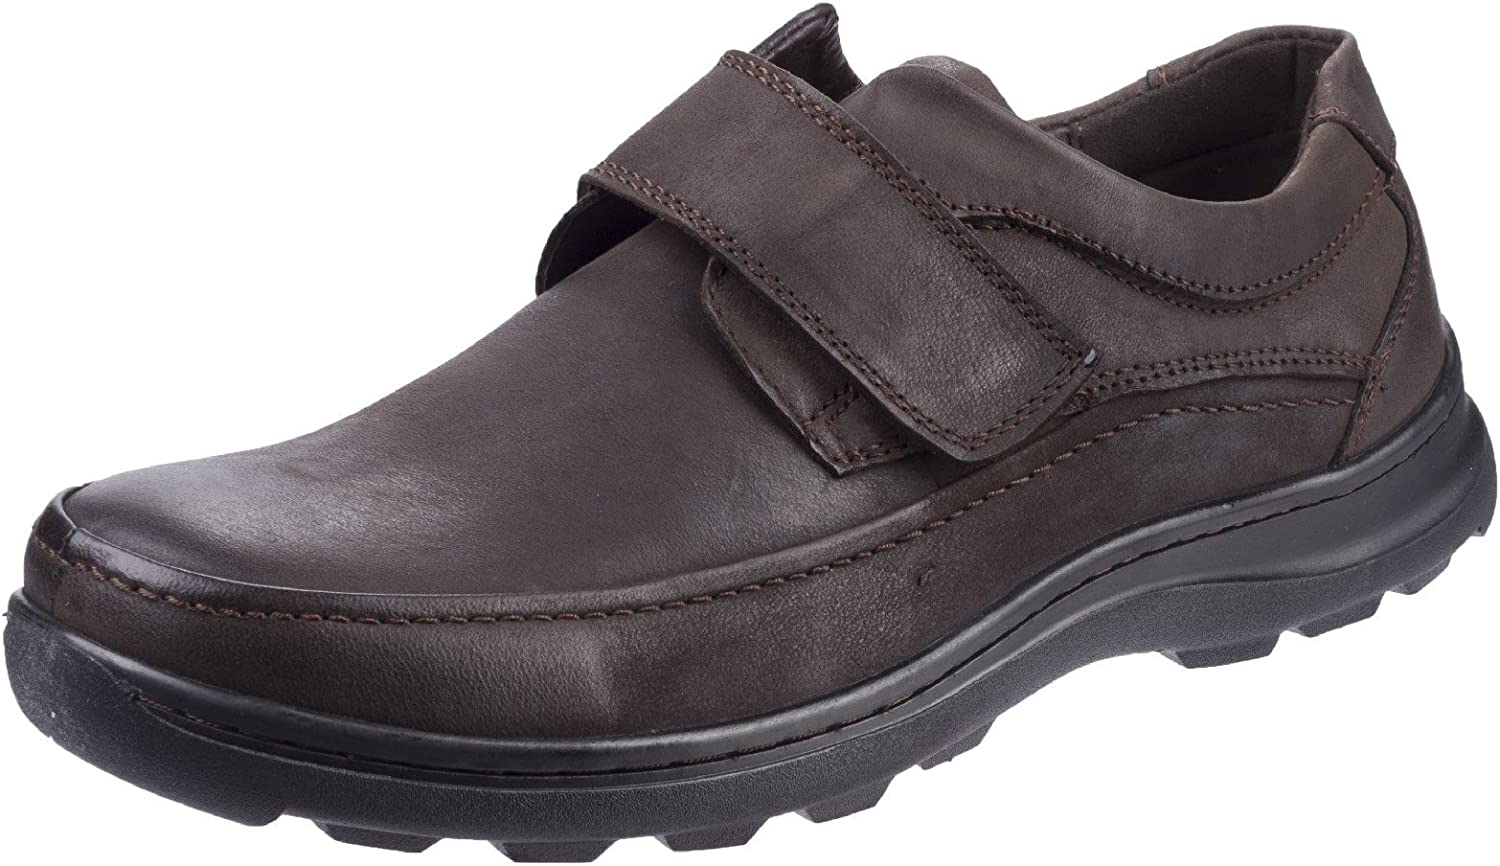 Fleet & Foster Mens Hurghada Velcro shoes Brown Size UK 9 EU 43